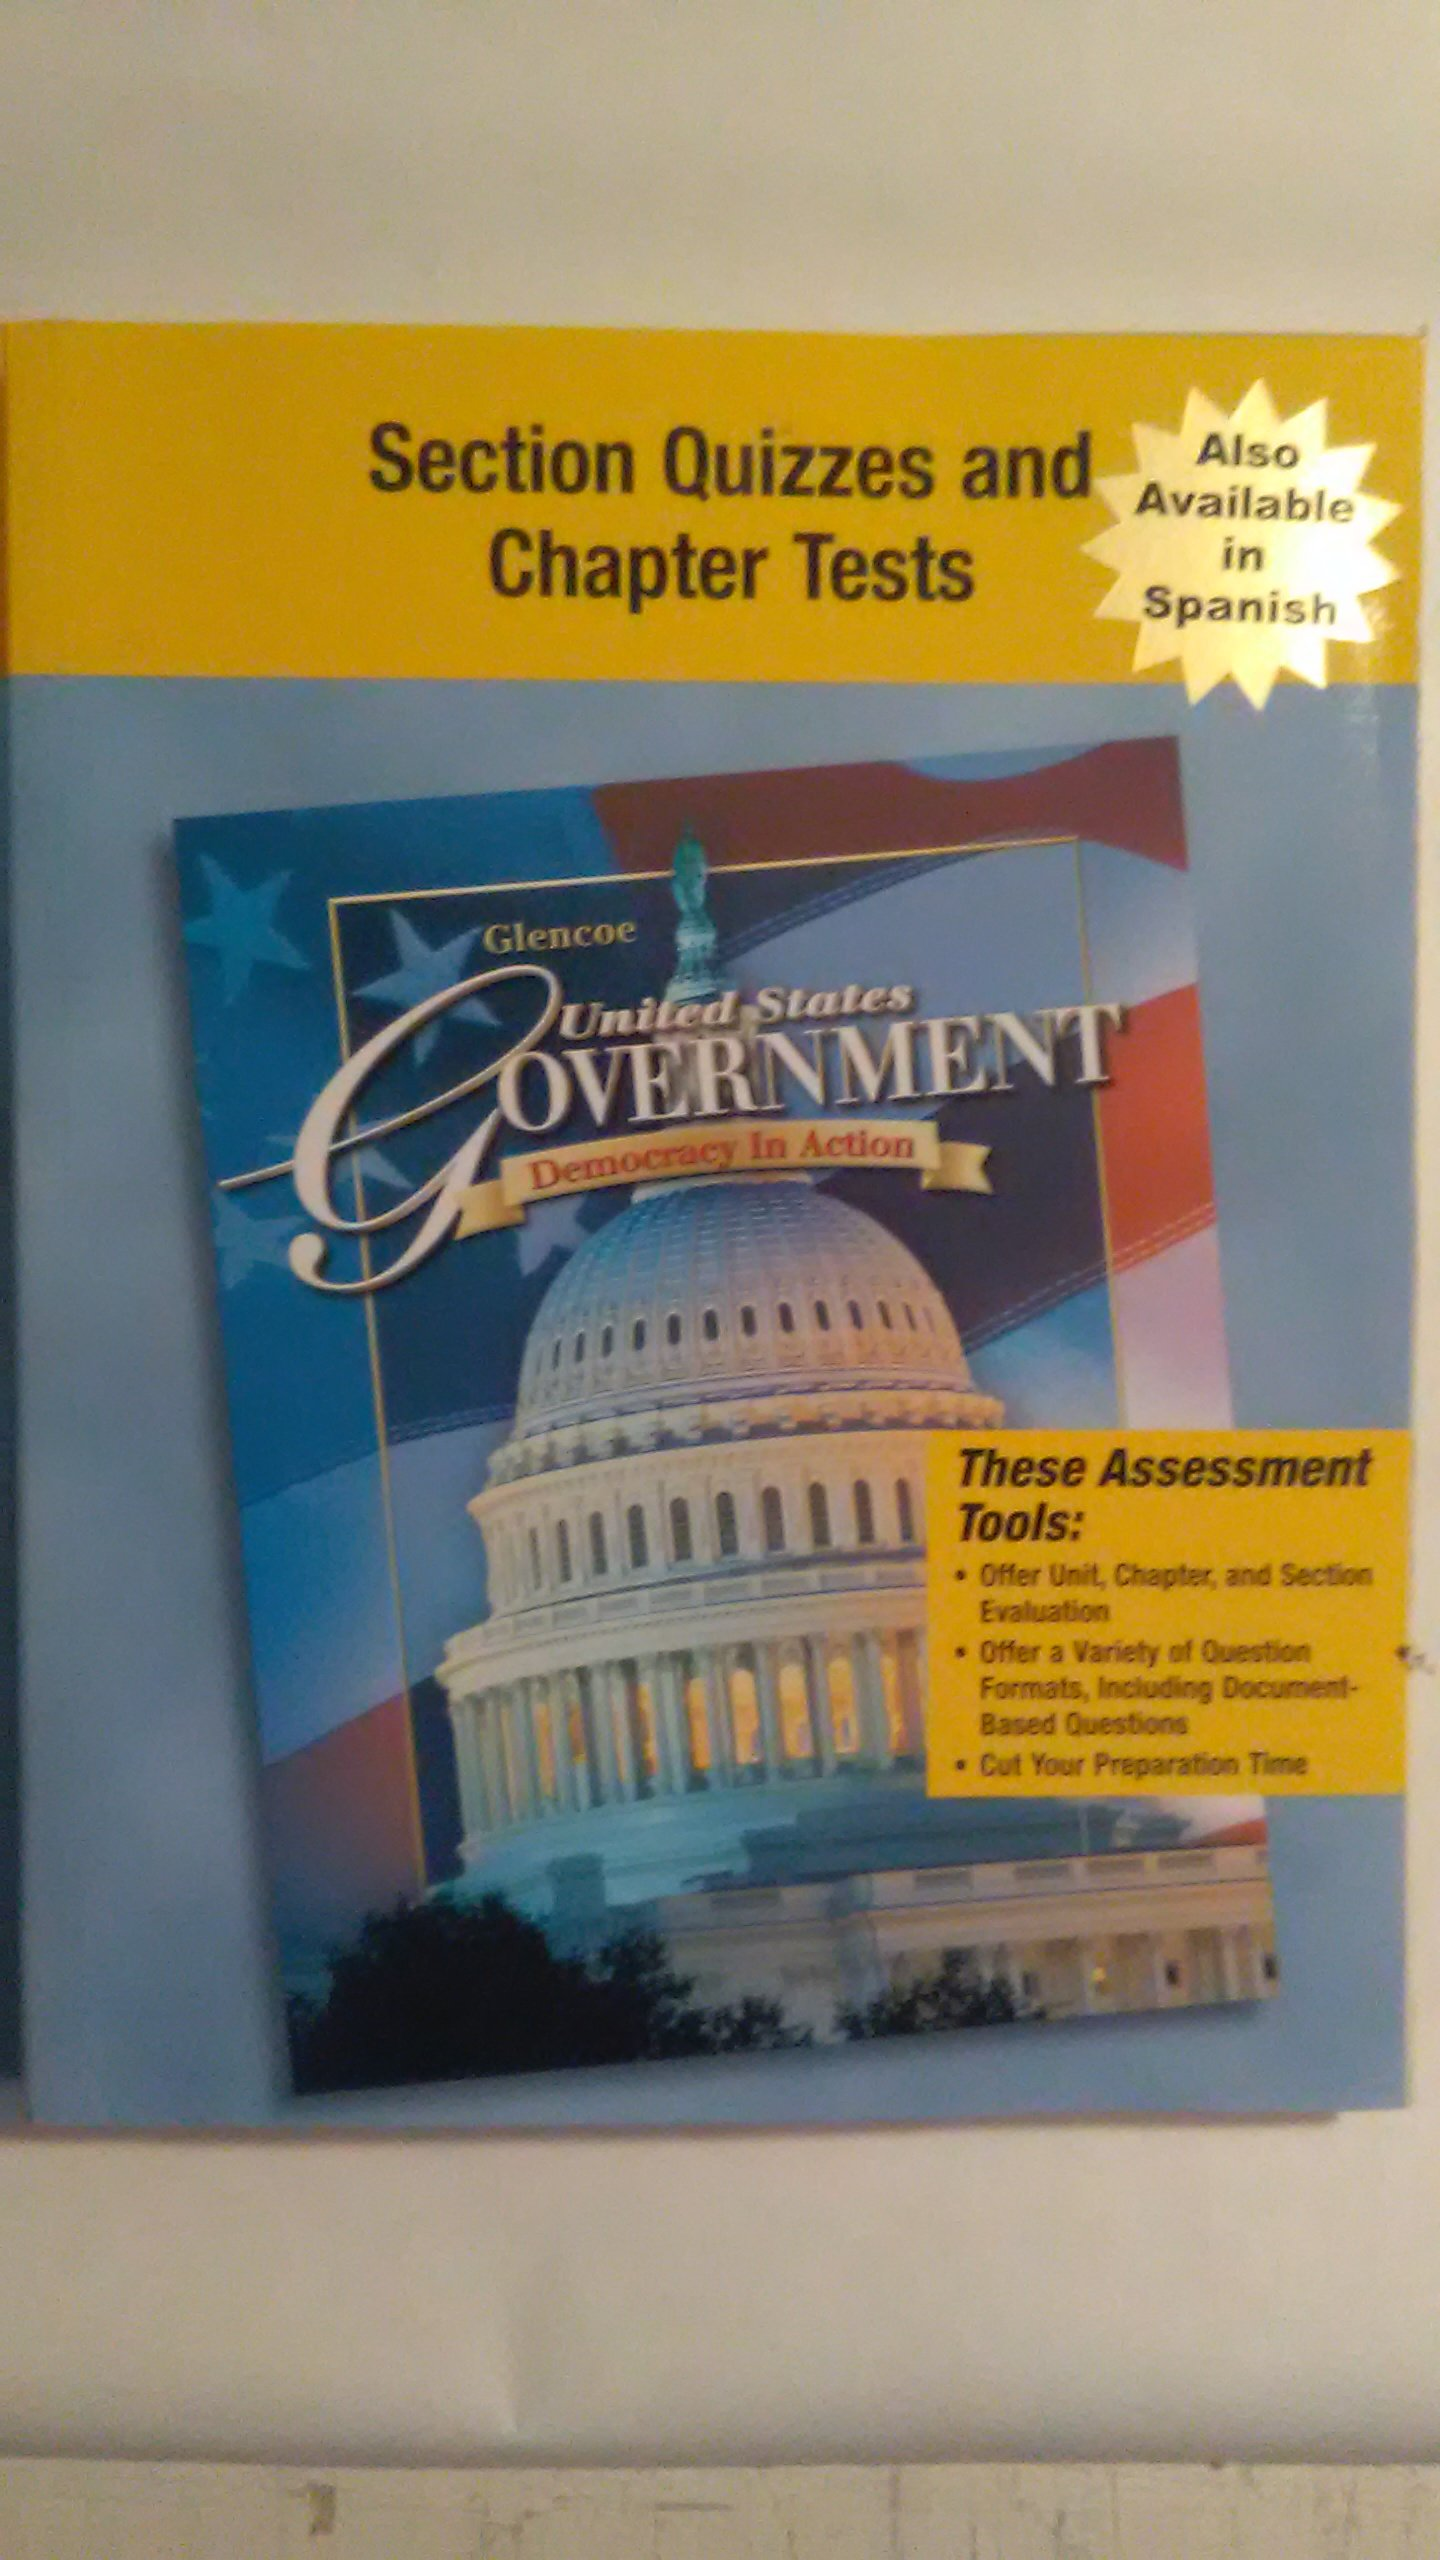 Glencoe United States Government Democracy in Action, Section Quizzes and  Chapter Tests: Glencoe: 9780078913693: Amazon.com: Books